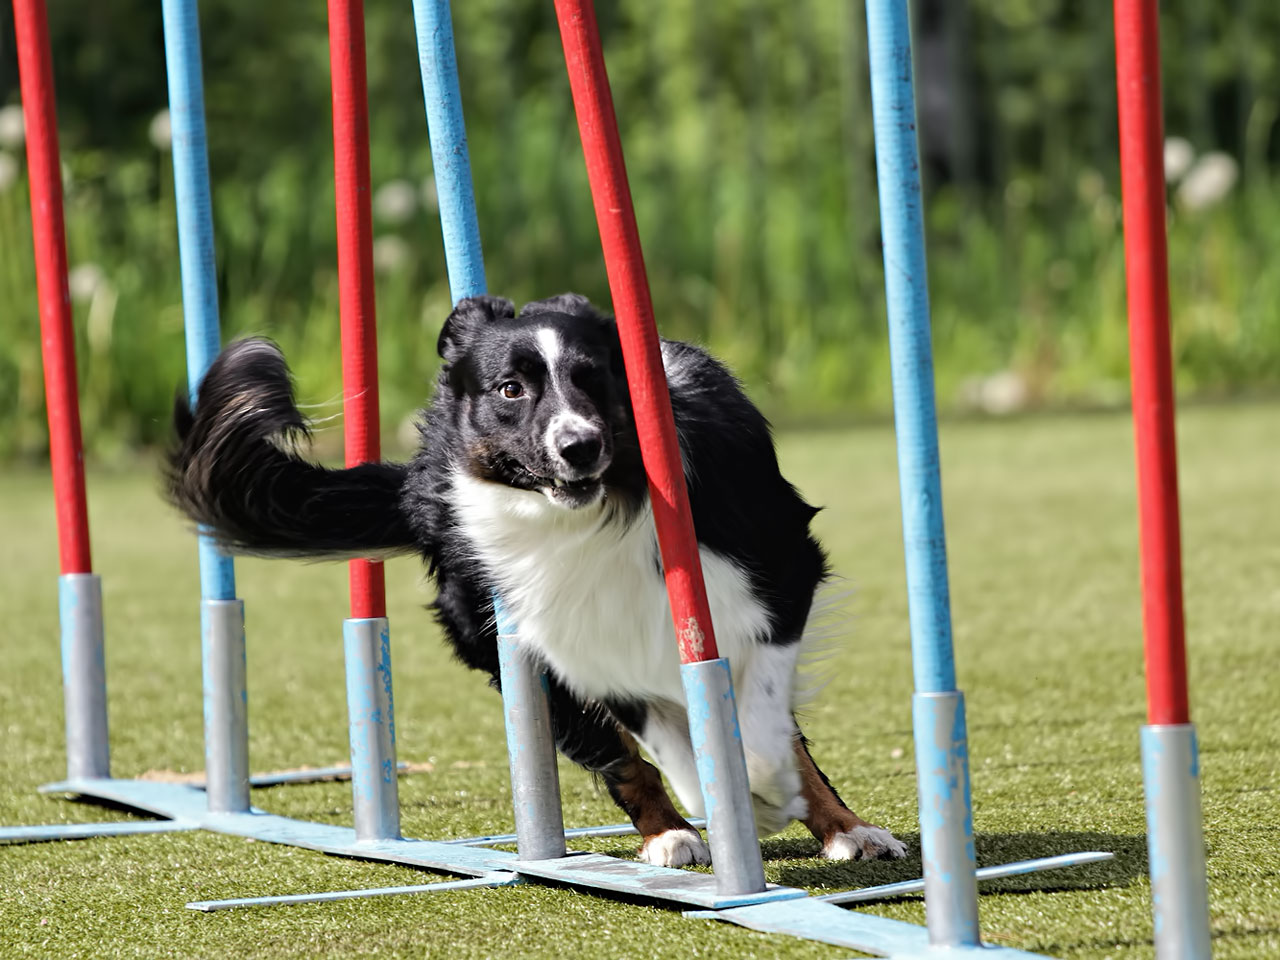 Border <a href='https://www.tieranzeigen.com/hunde/collie/' title='Rasseportrait: Collie' class='link_xl'>Collie</a> absolviert Agility Parcour